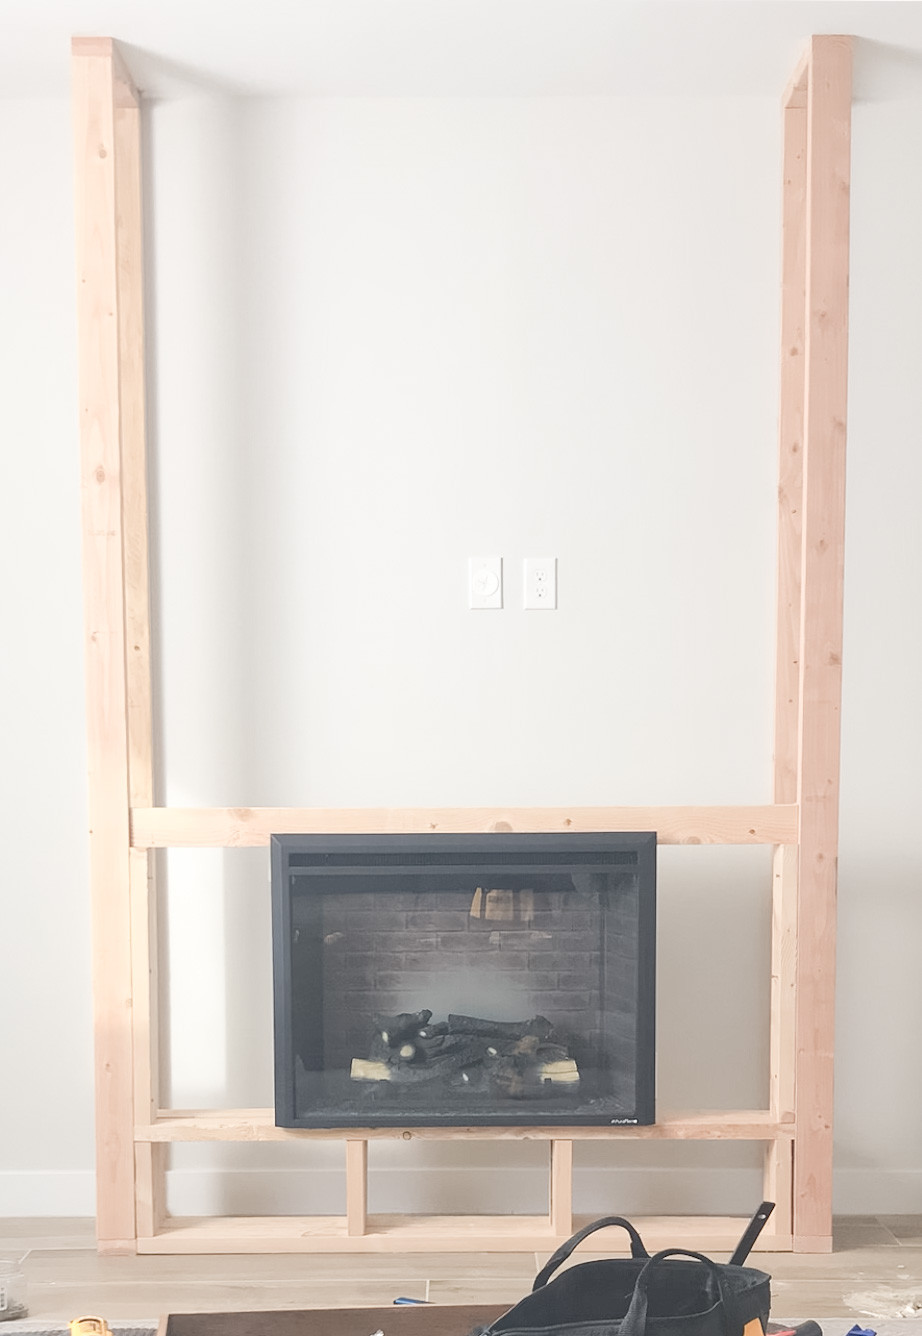 Electric insert in place, secured studs around it.